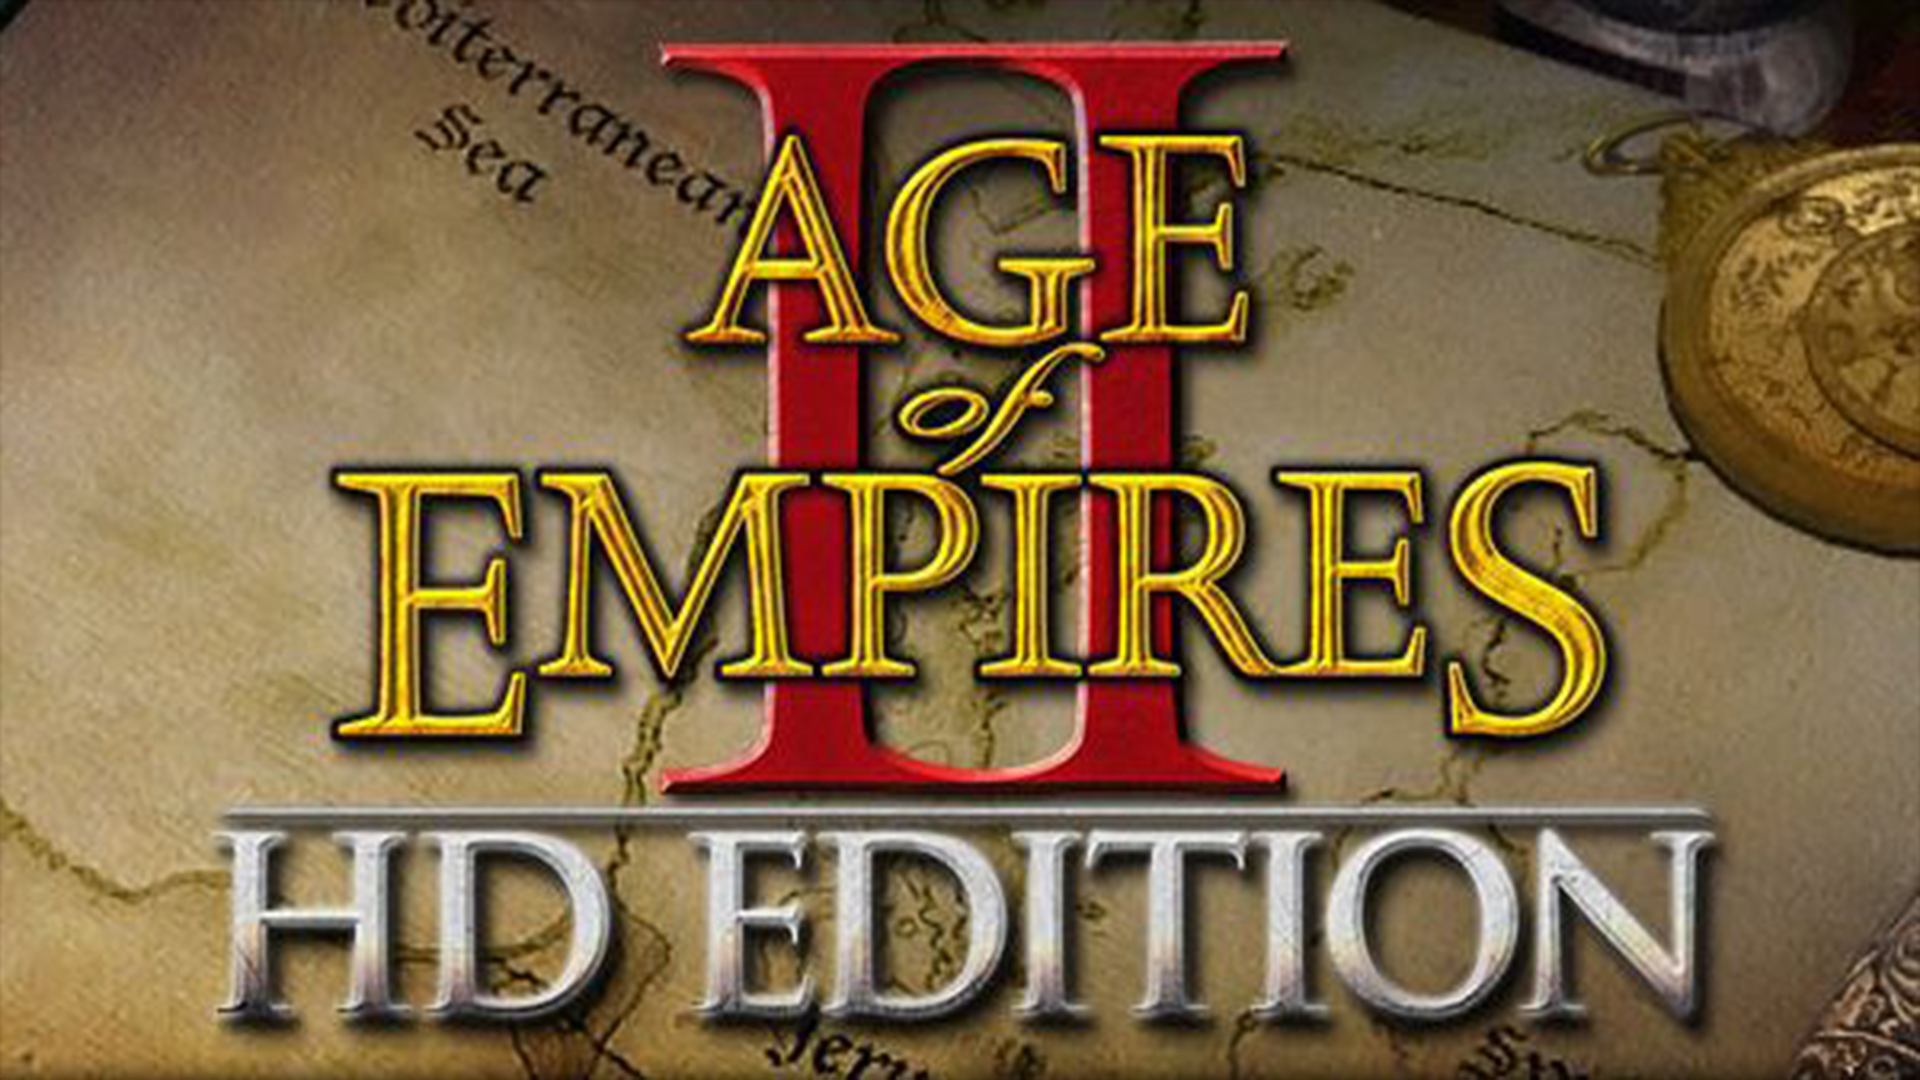 Age of Empires II: HD Edition Details - LaunchBox Games Database